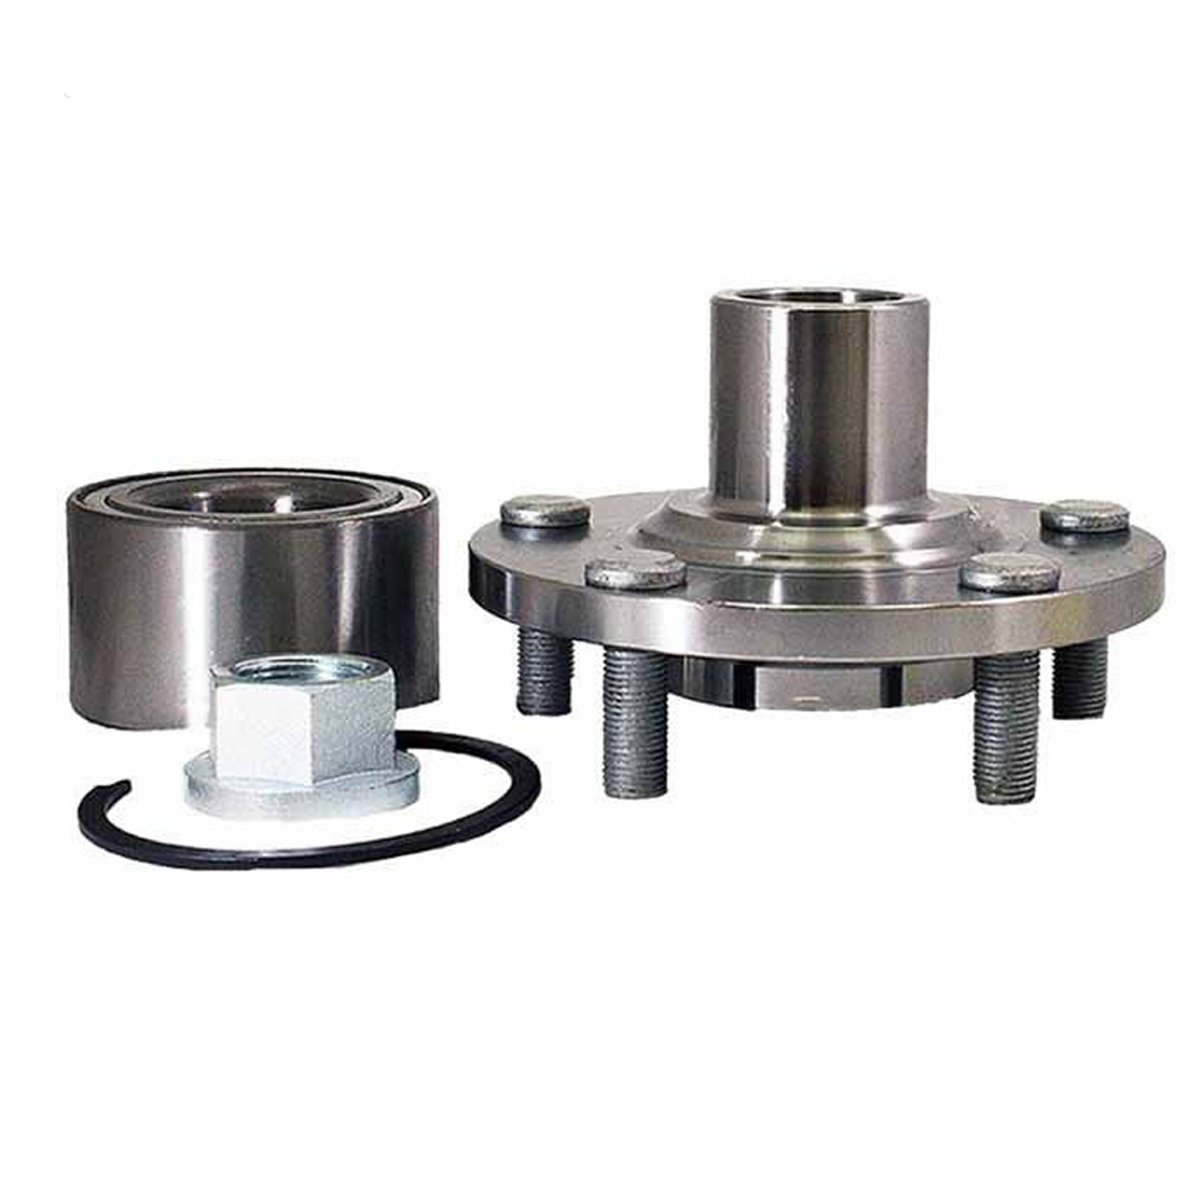 Brand New Front Wheel Hub and Bearing Assembly Kit Nissan Altima W/ Bearing 5 Bolt 6 Cyl Only 518516